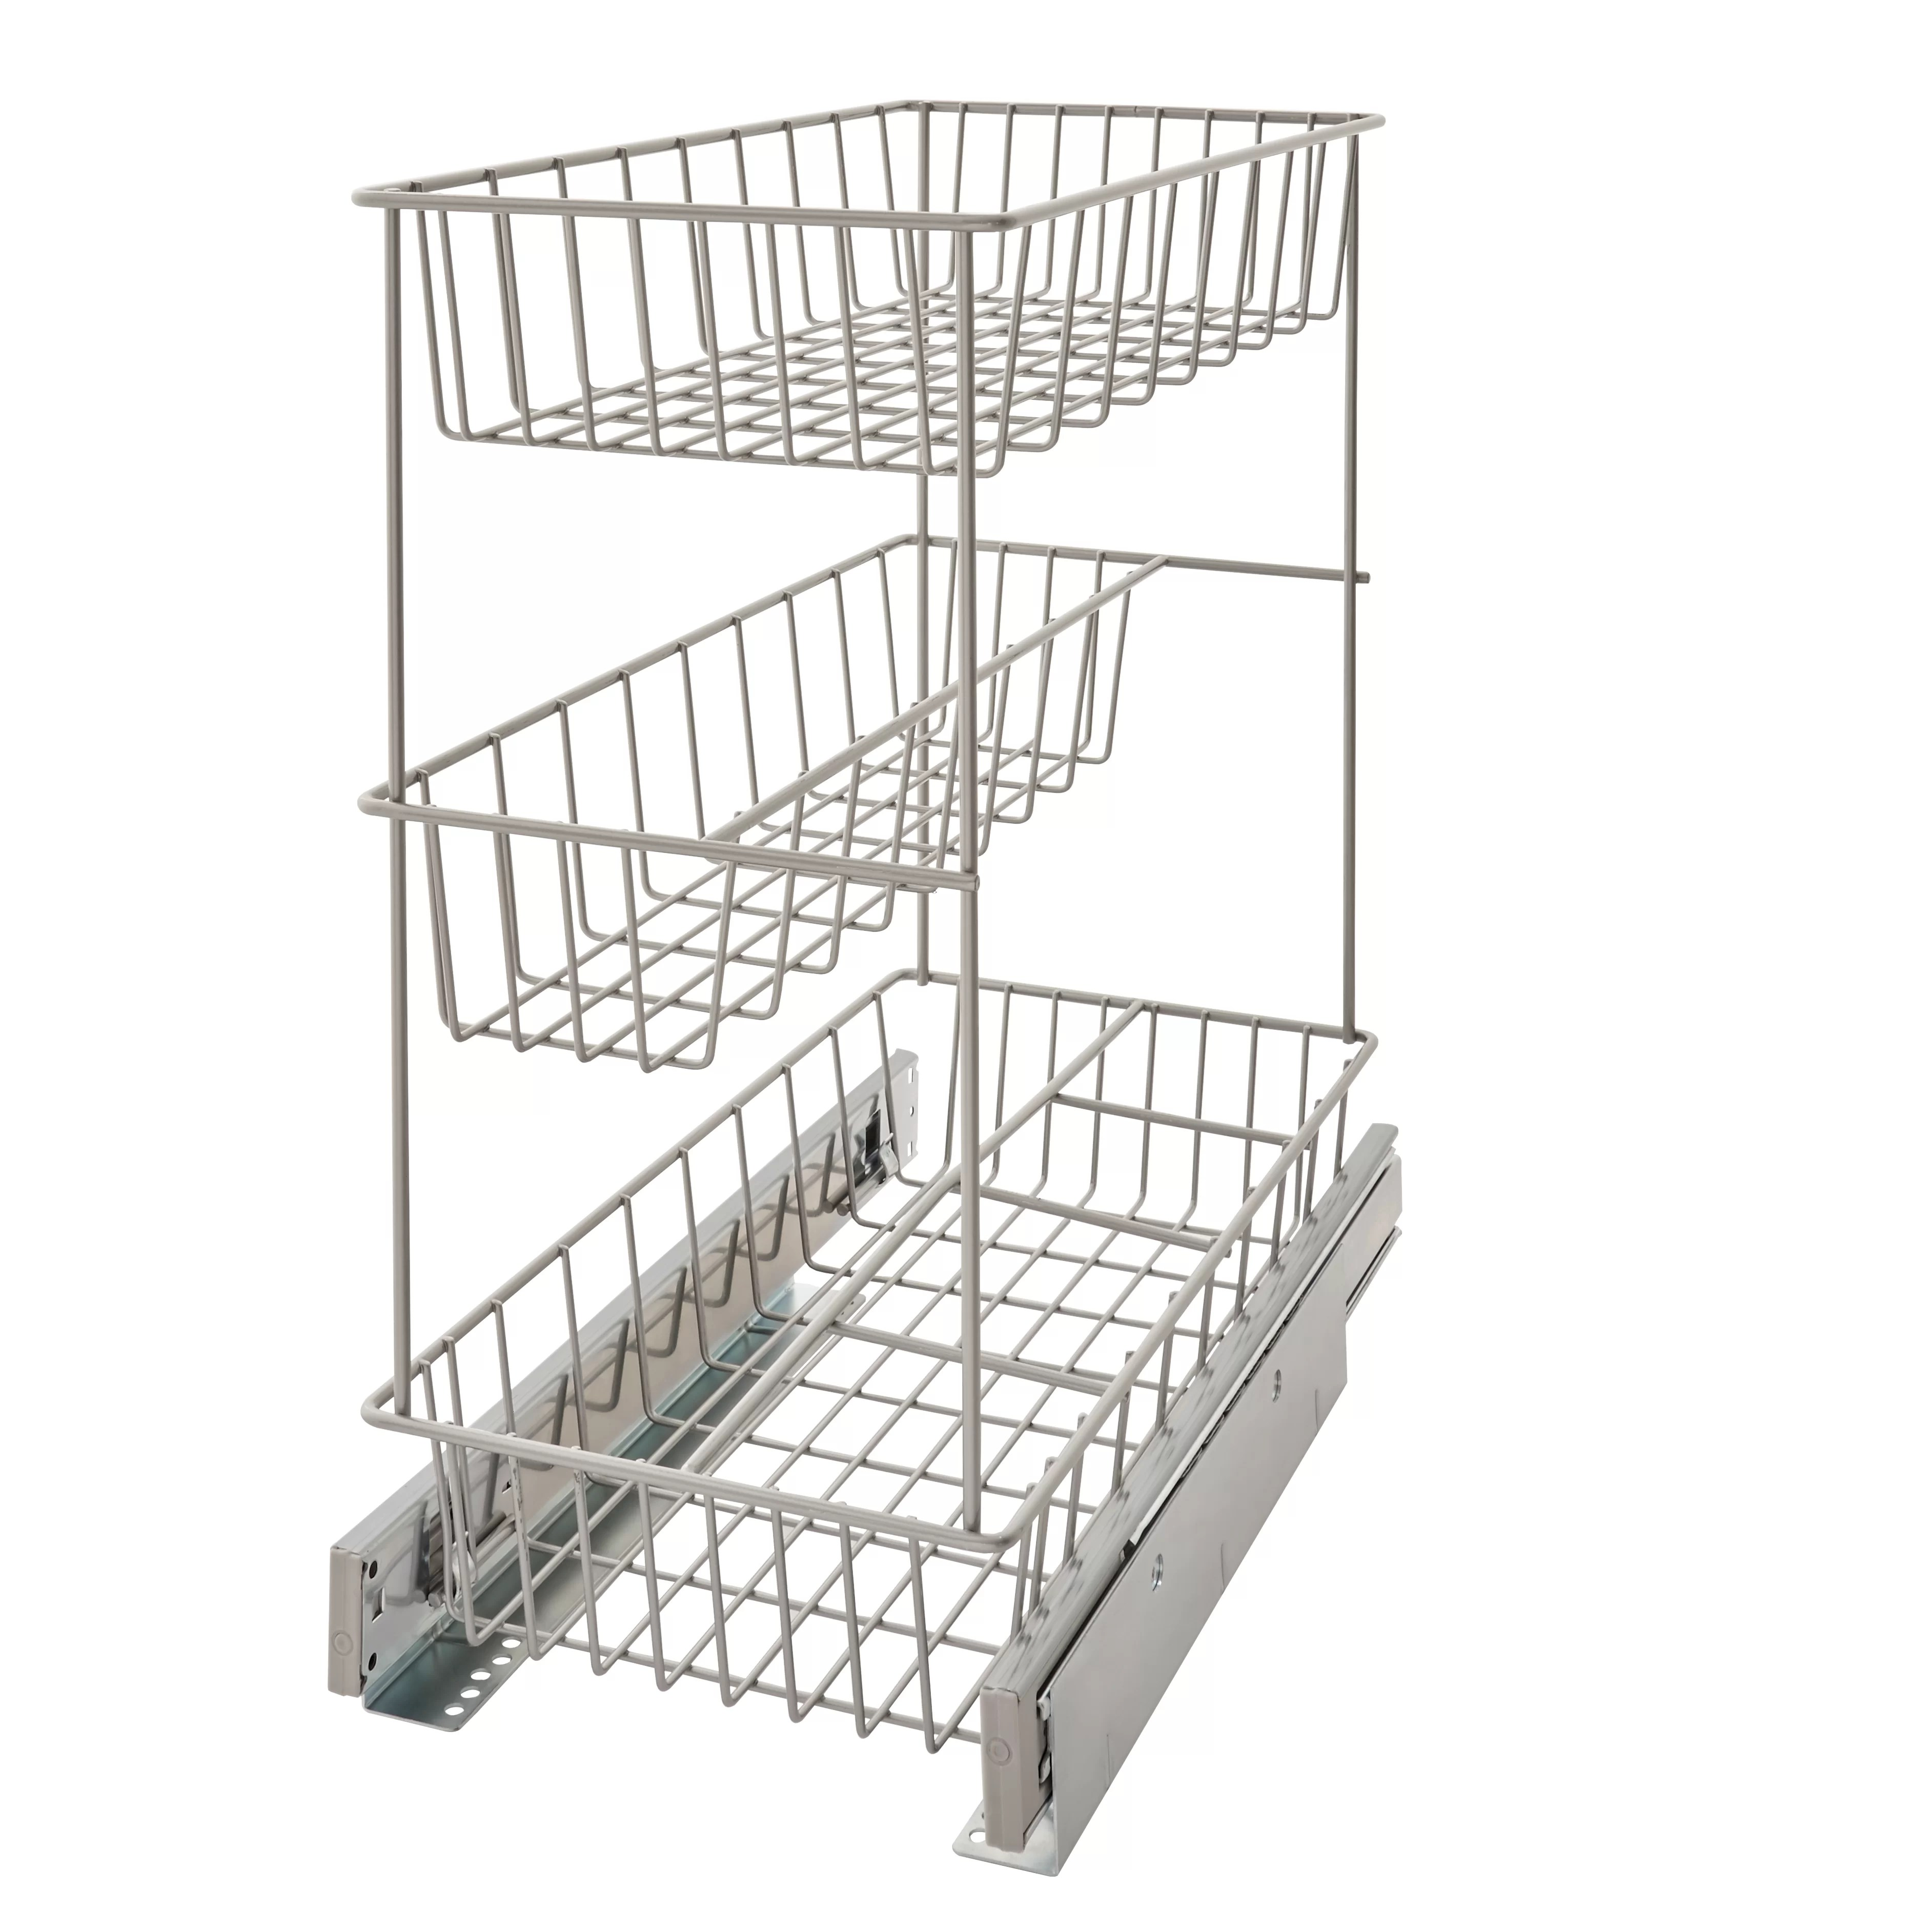 Ingenious Closet Organizers Pull Out Baskets